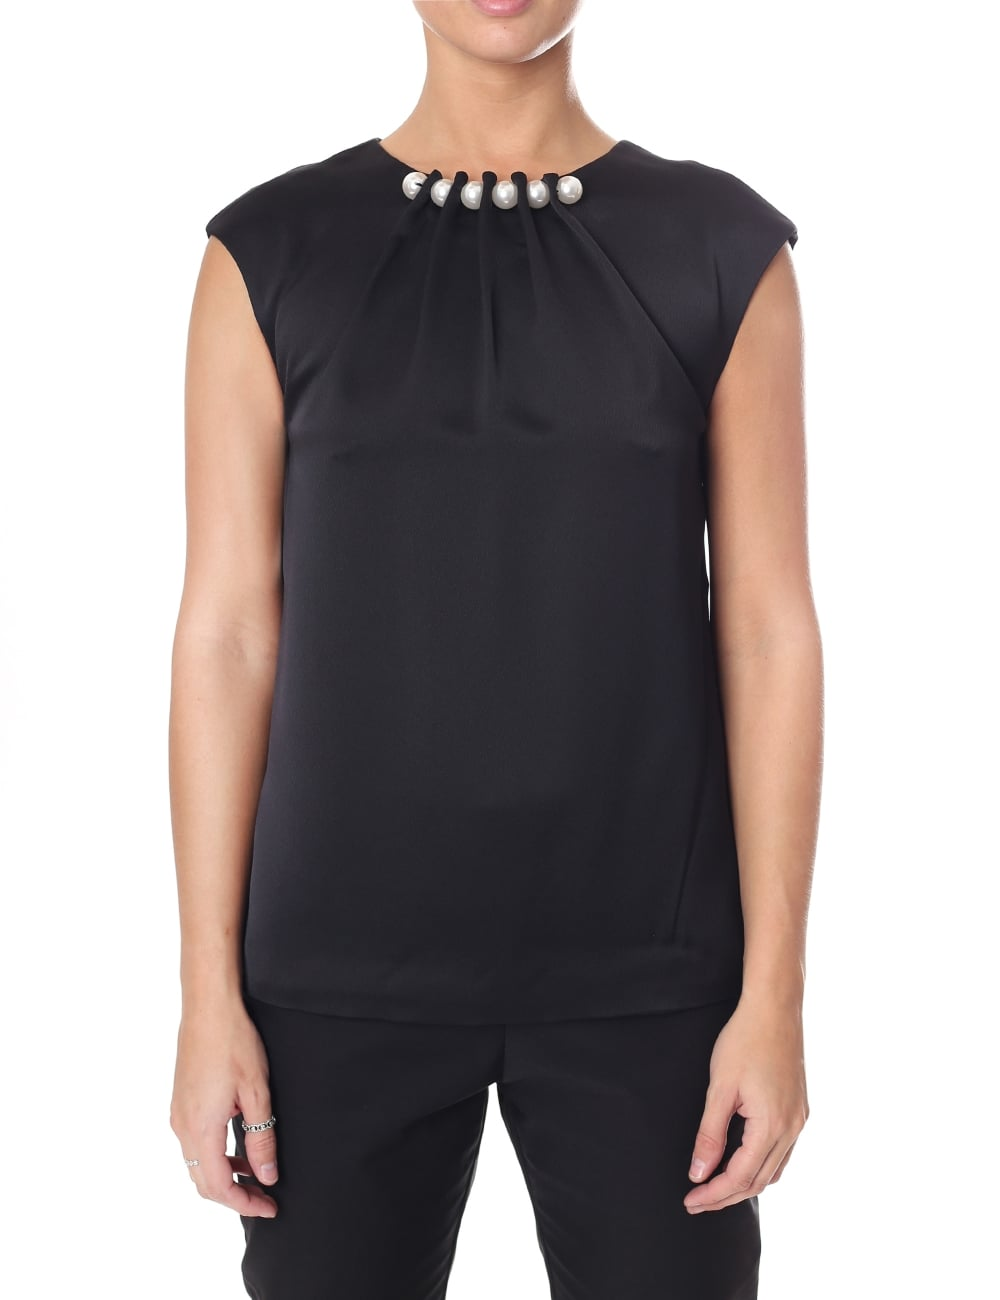 9e59d4c8a0816 Ted Baker Women s Camble Folded Pearl Neck Sleeveless Top